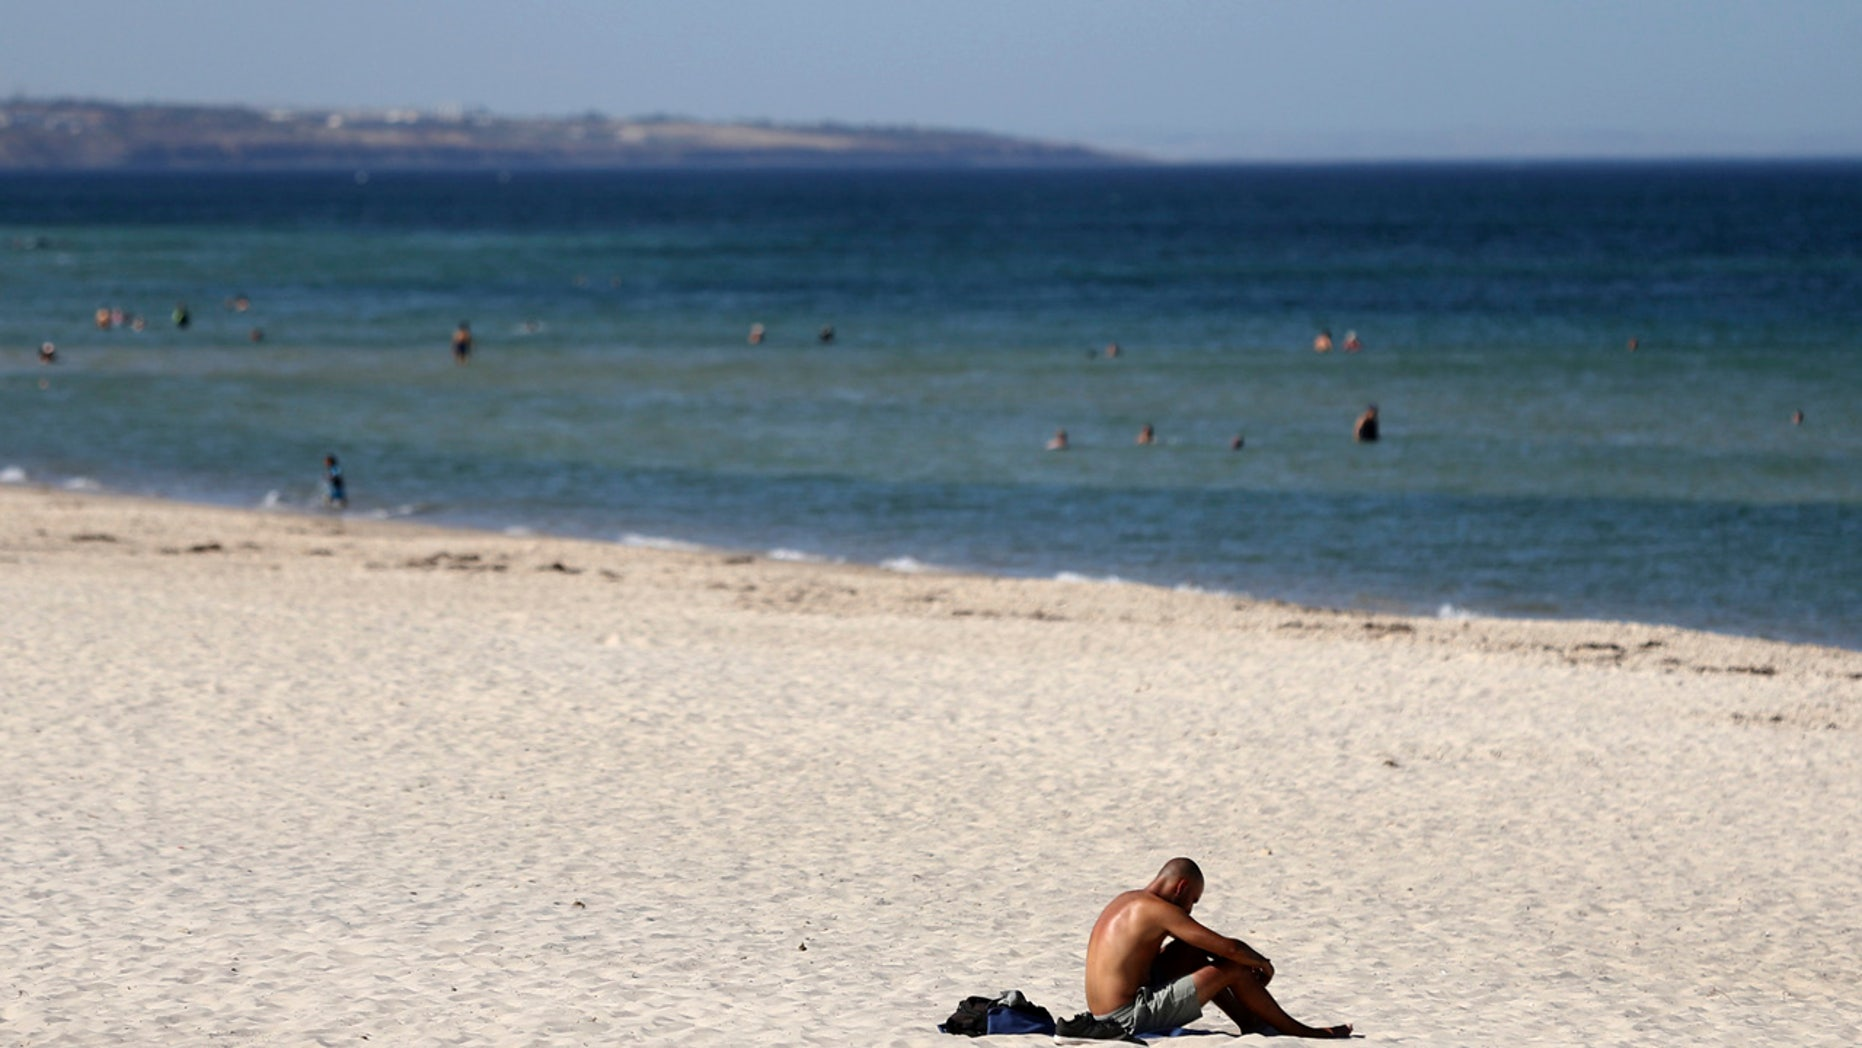 Adelaide sweltered through the highest temperature ever recorded by a major Australian city on Thursday, peaking at a searing 115.9 degrees Fahrenheit as the drought-parched nation heads toward potentially the hottest January on record.